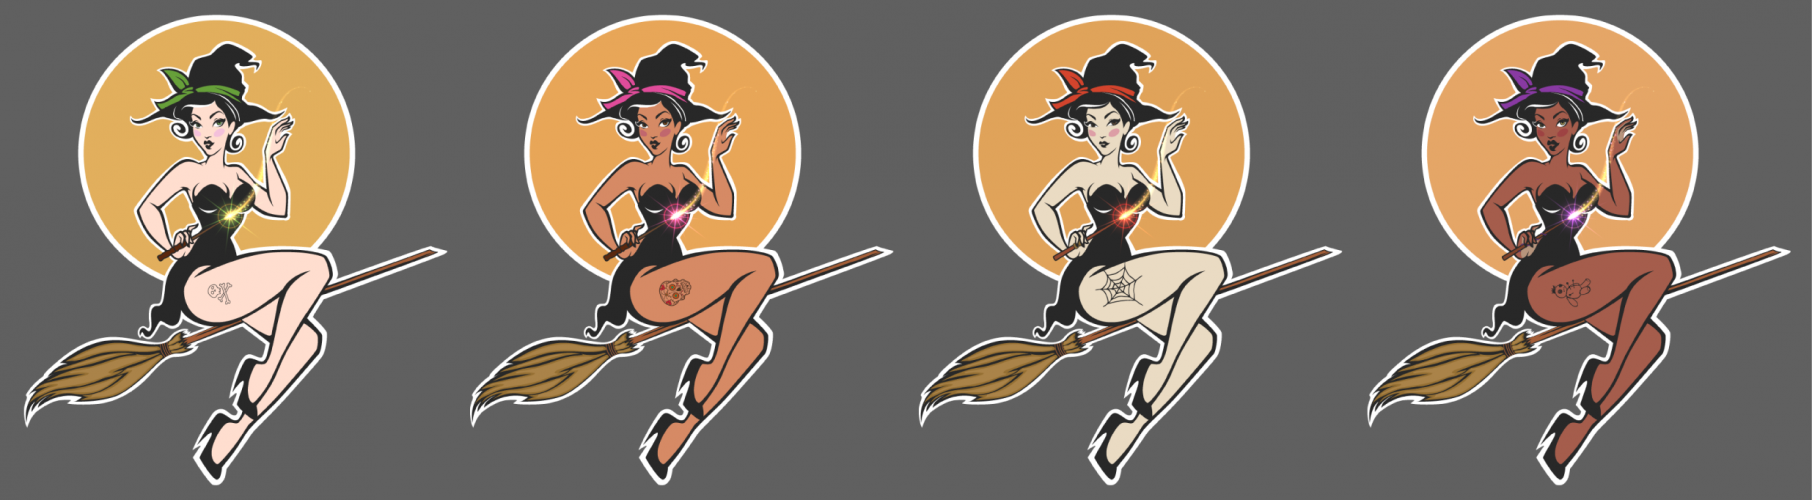 Halloween Witches Graphic Art